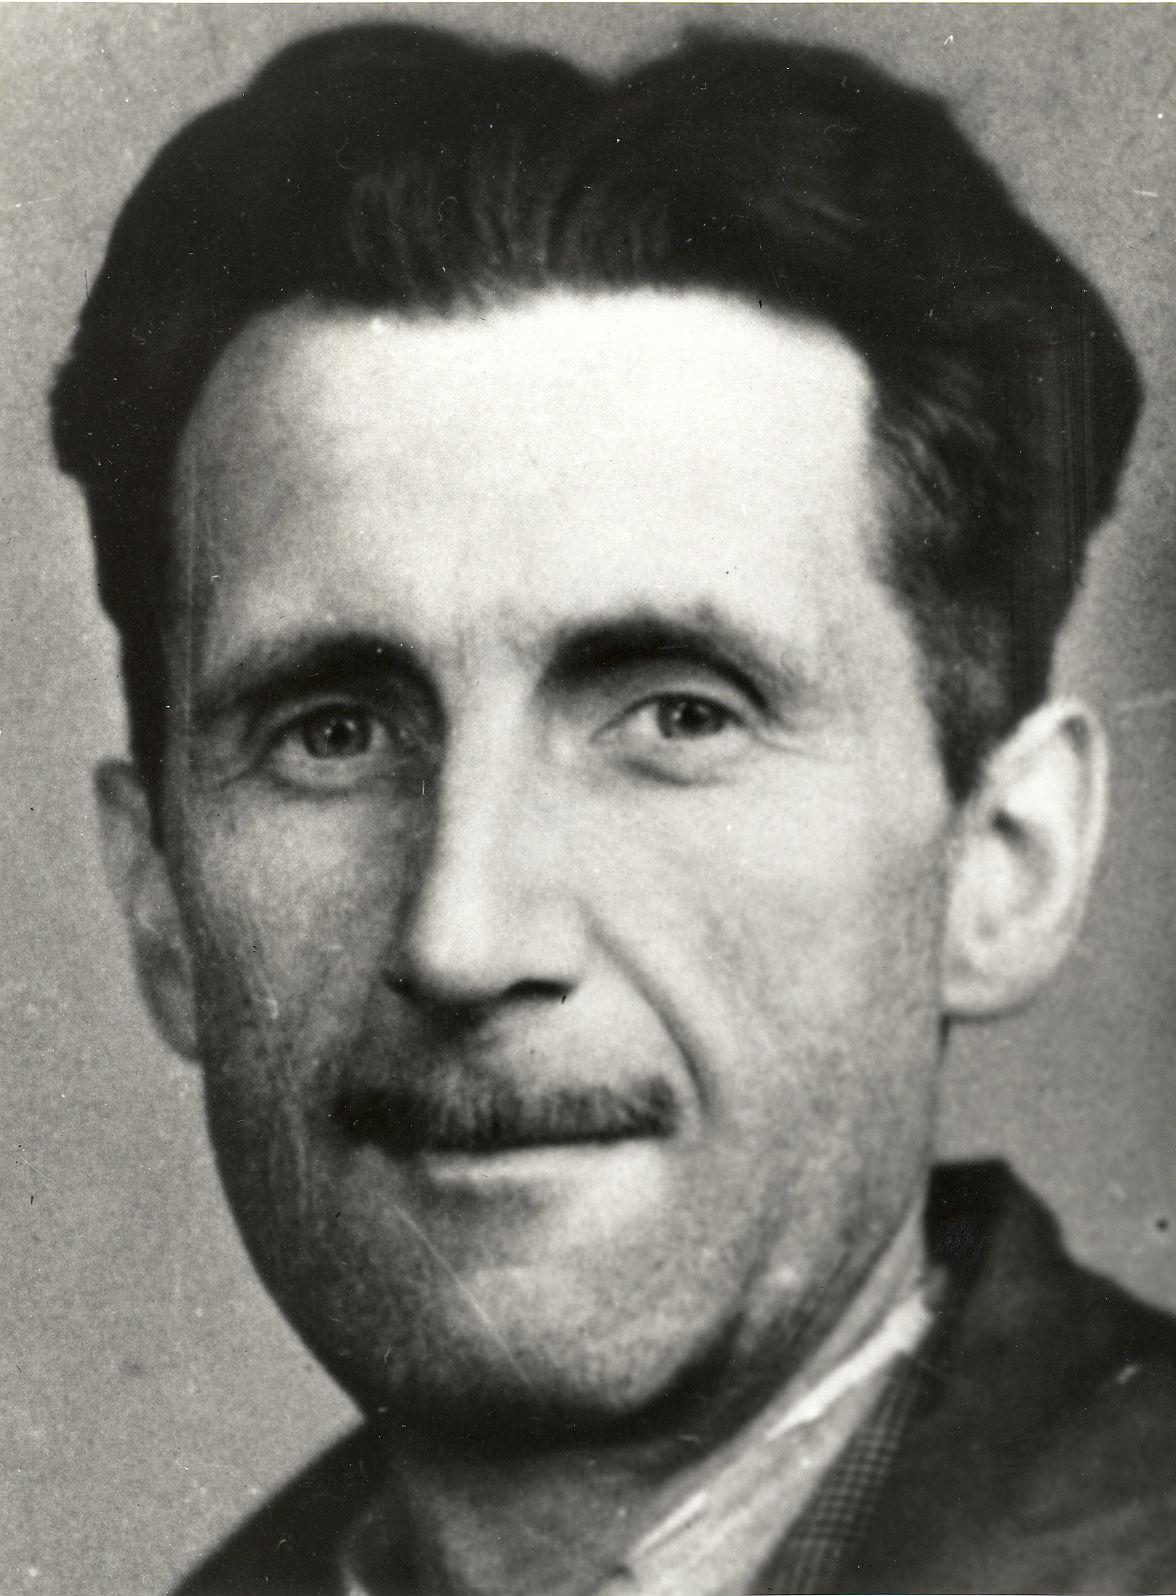 Photo of George Orwell: English author and journalist